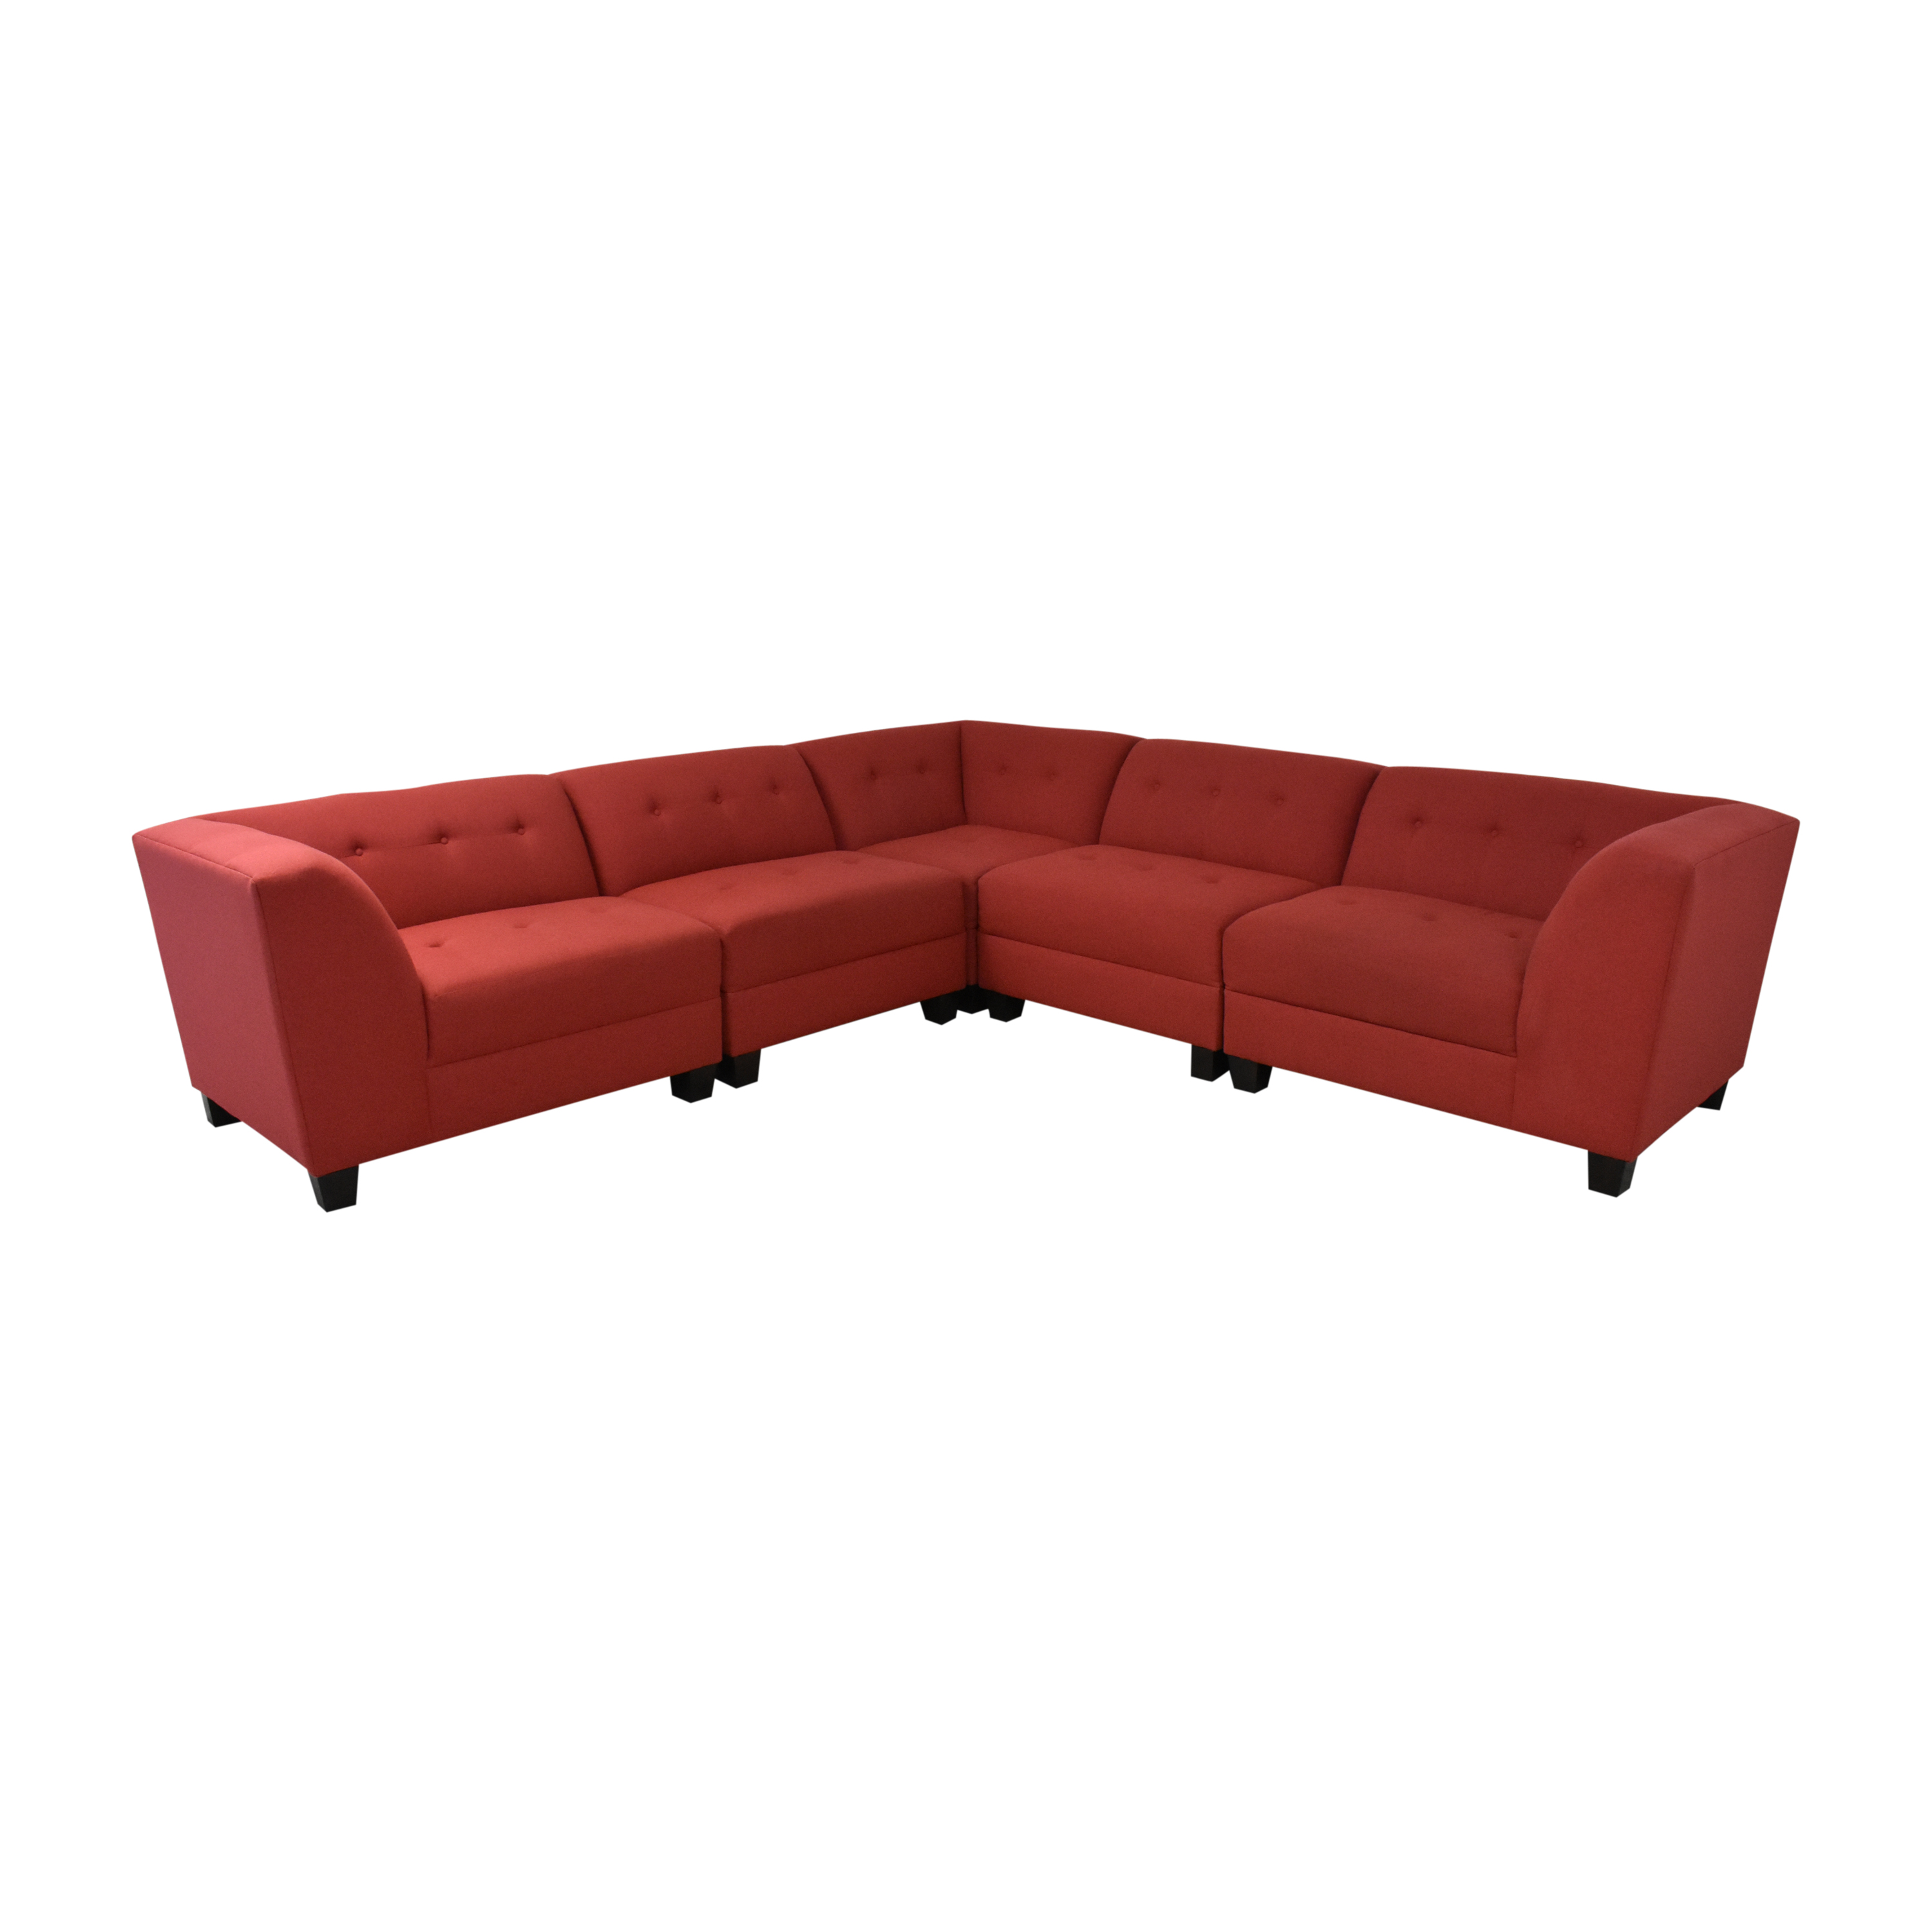 England Furniture England Furniture Miller Five Piece Sectional Sofa with Ottoman ct